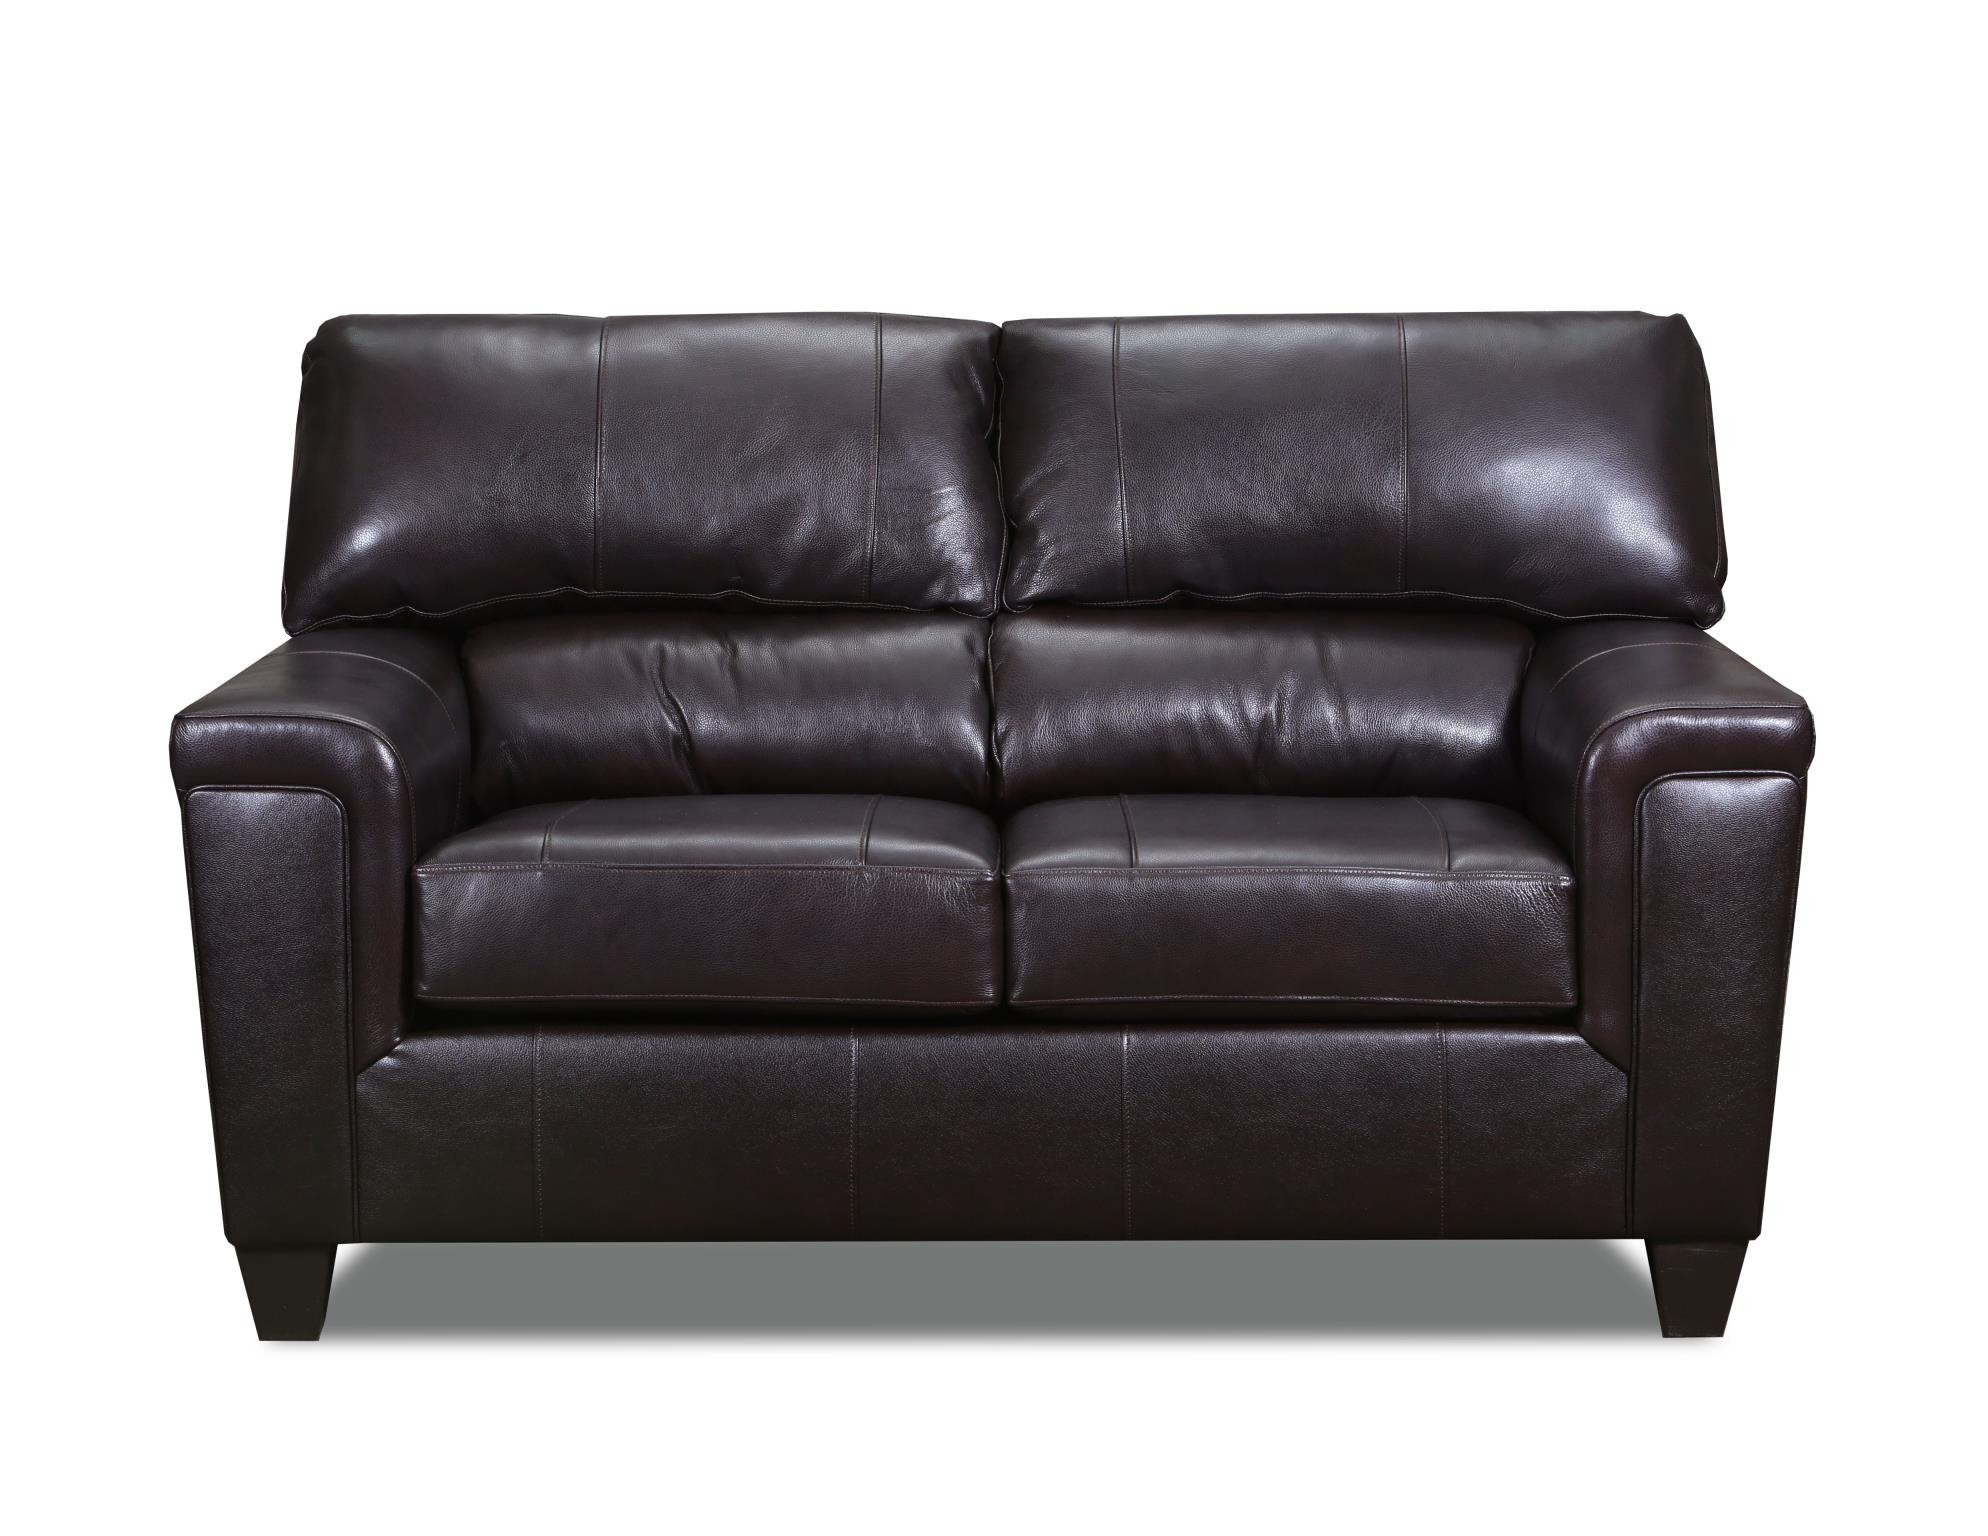 55766 phygia espresso brown leather loveseat